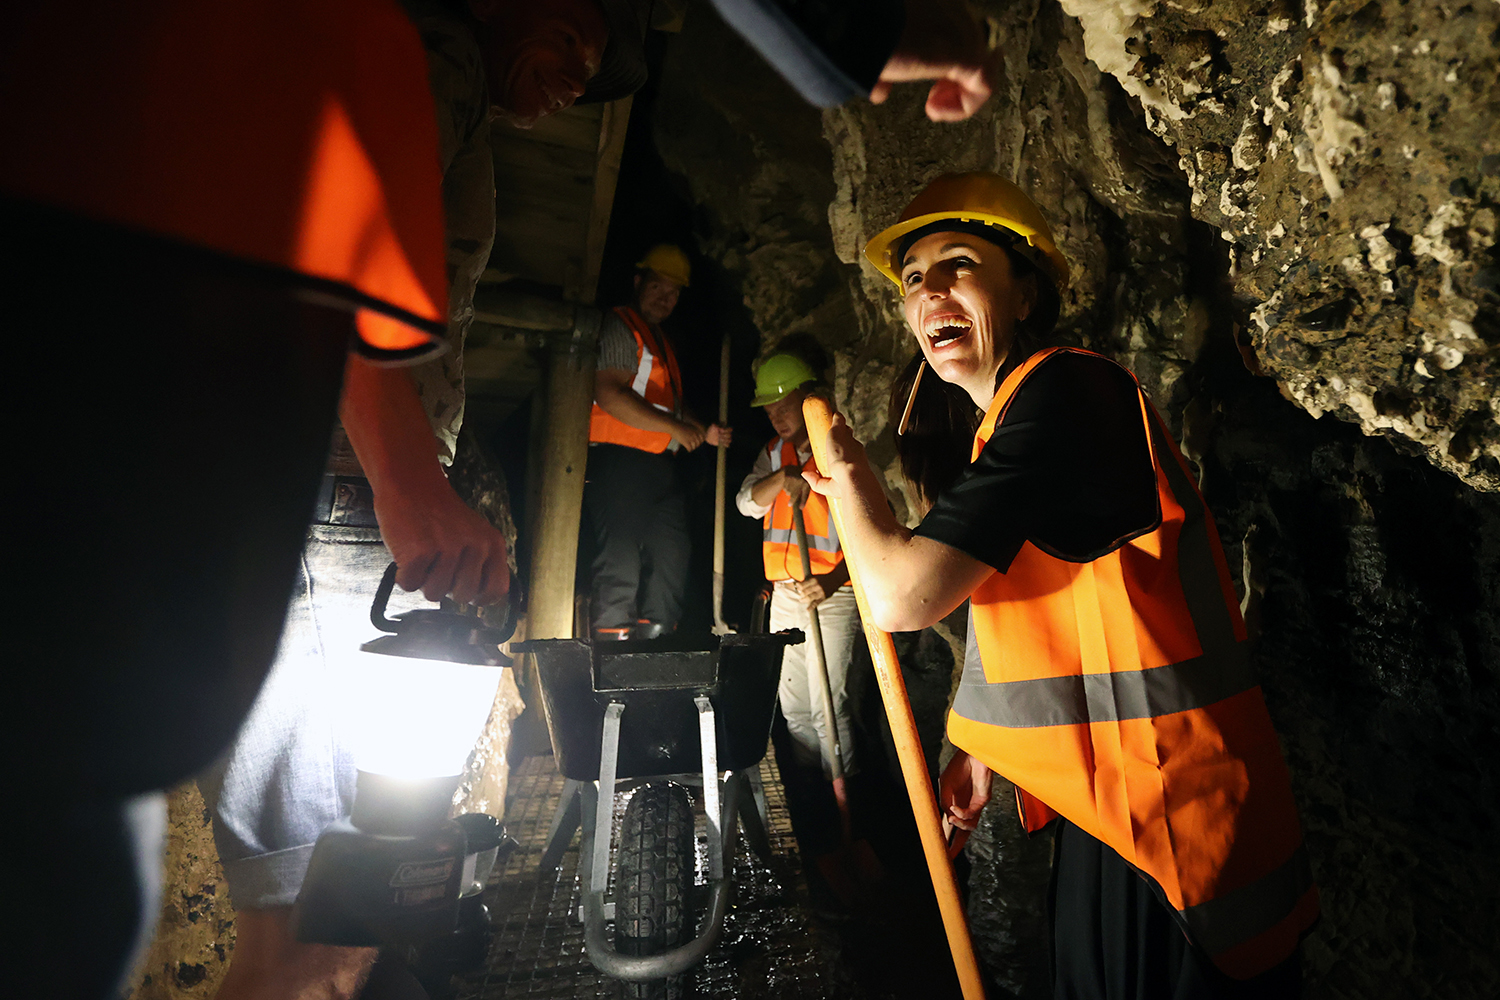 Prime Minister Jacinda Ardern helps shovel metal to reduce flooding as she visits Kawiti Caves in Waitangi, New Zealand, on Feb. 3. Fiona Goodall/Getty Images